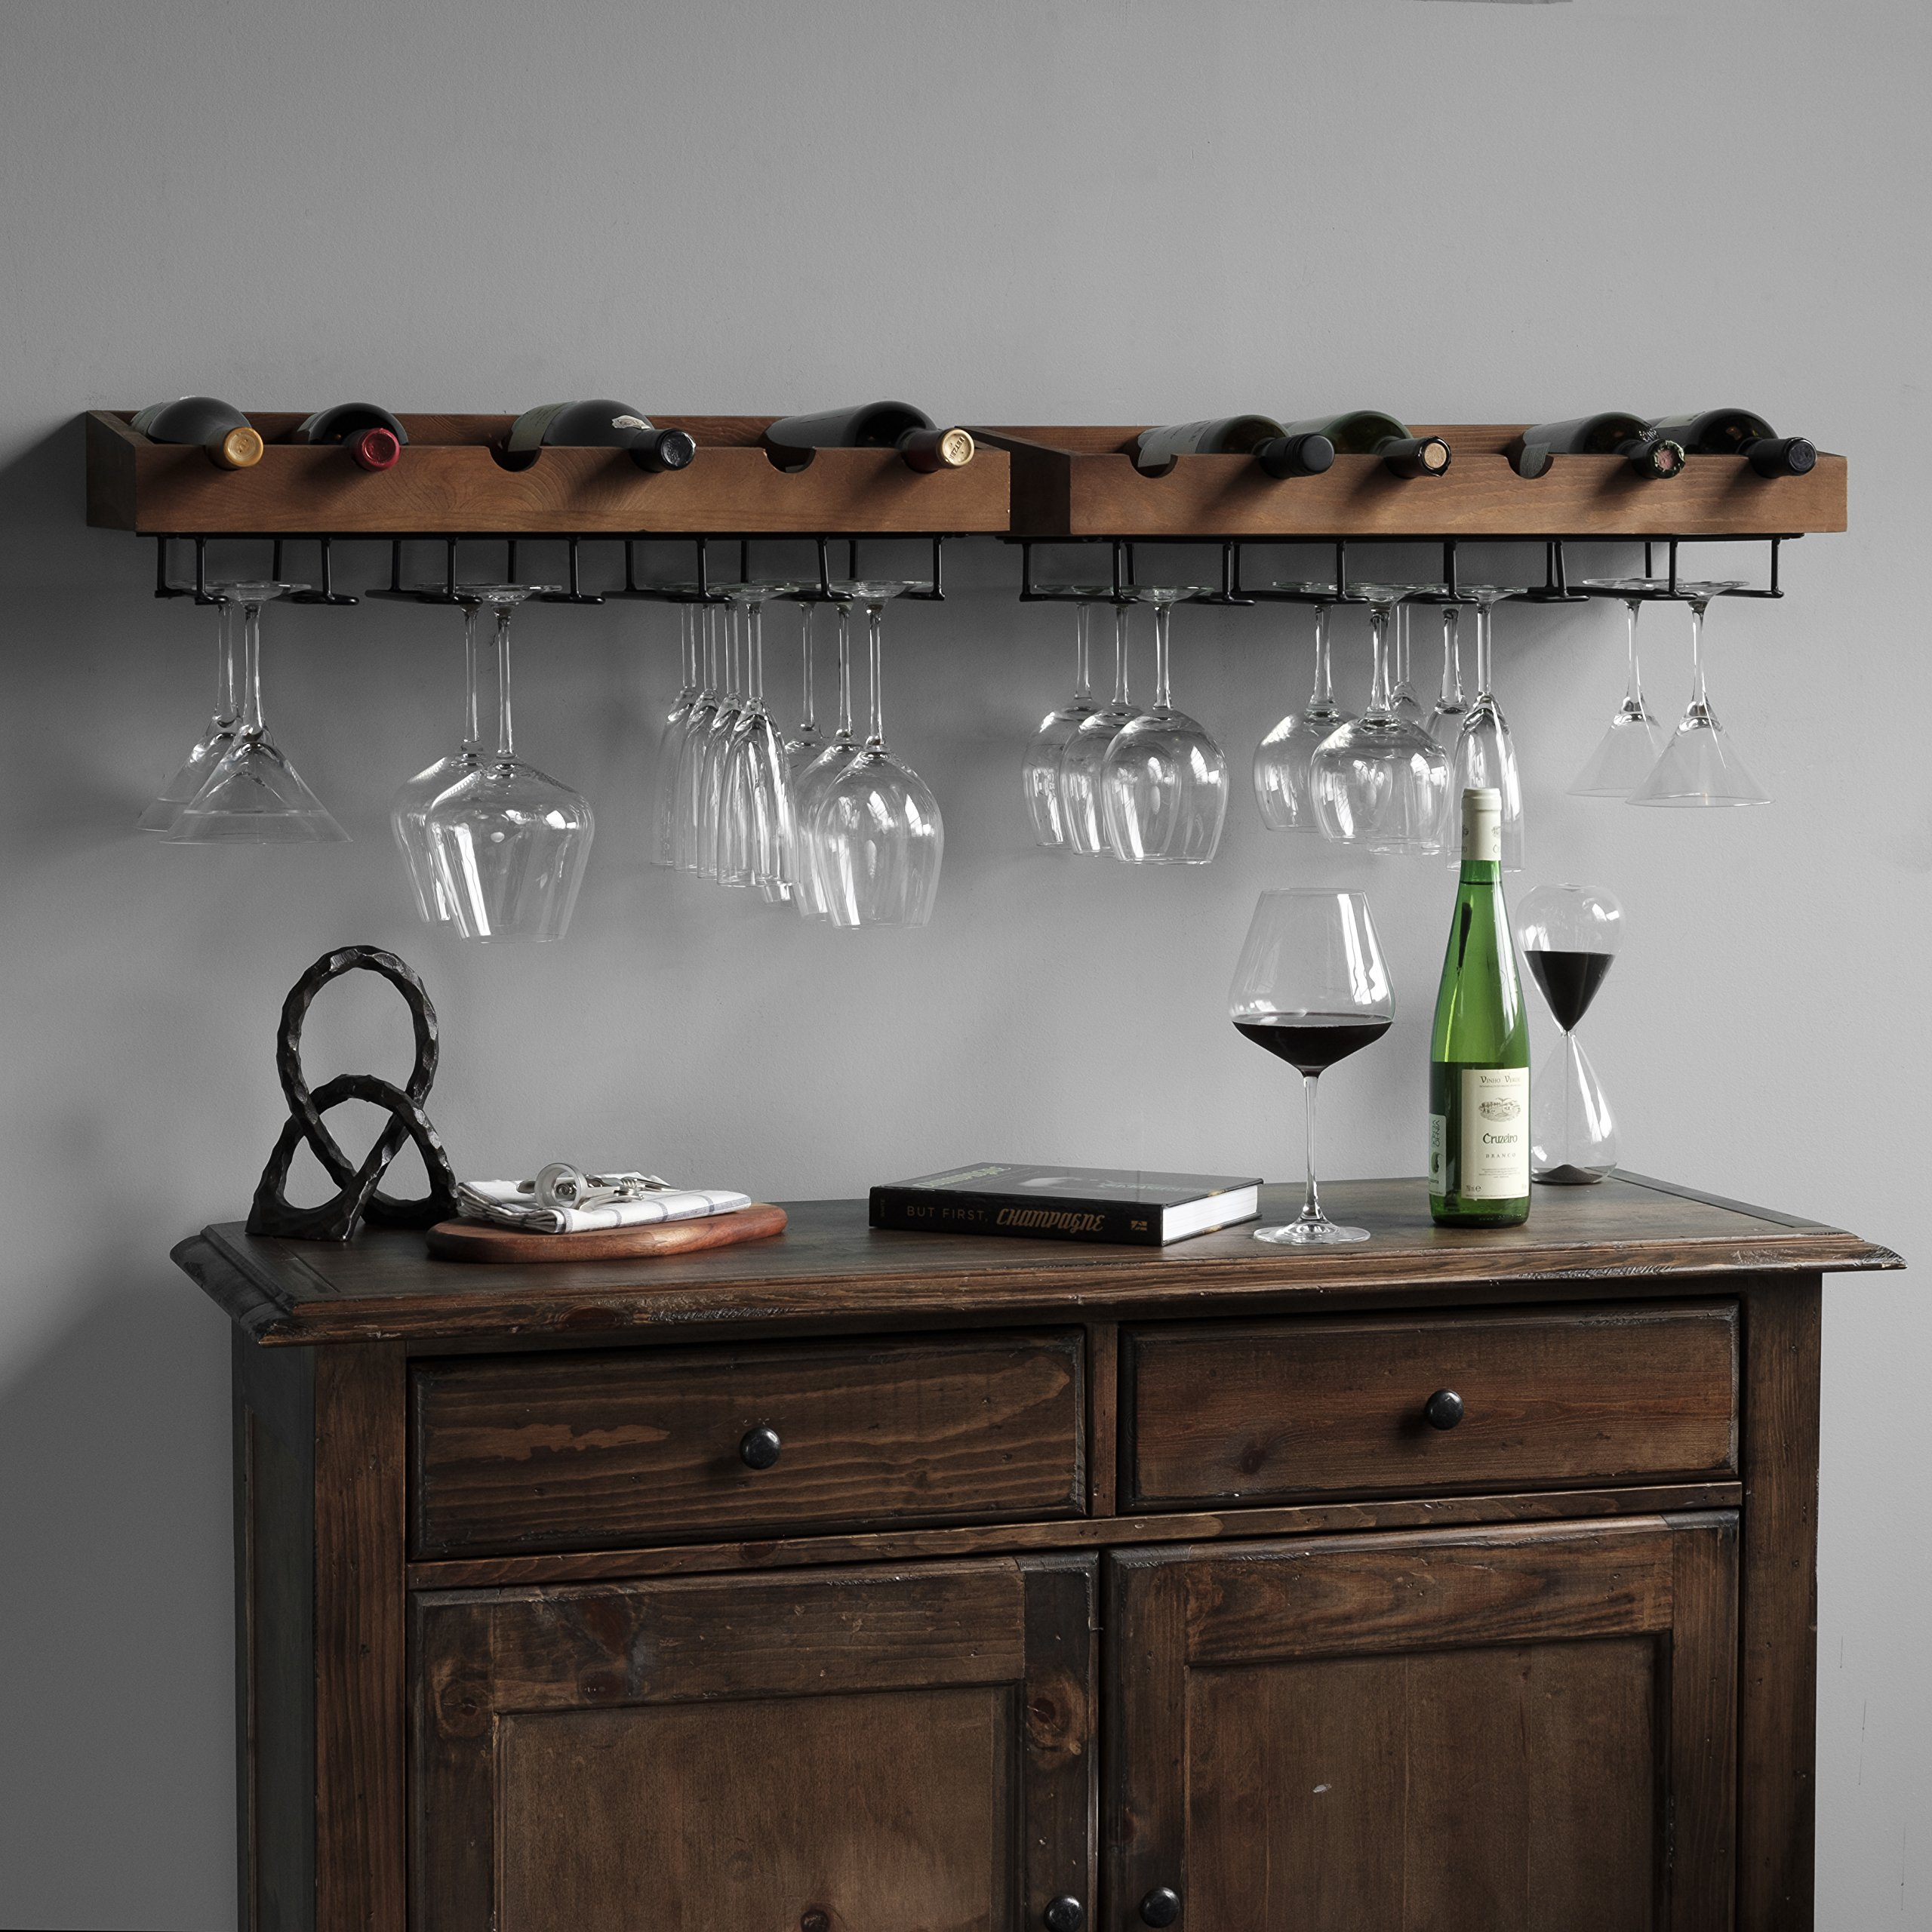 brightmaison Wall Mounted Walnut Stained Wood Wine Stem Rack for 6 Bottles and Stemware Glass Storage Holder Organizer Display (Set of 2) by brightmaison (Image #6)